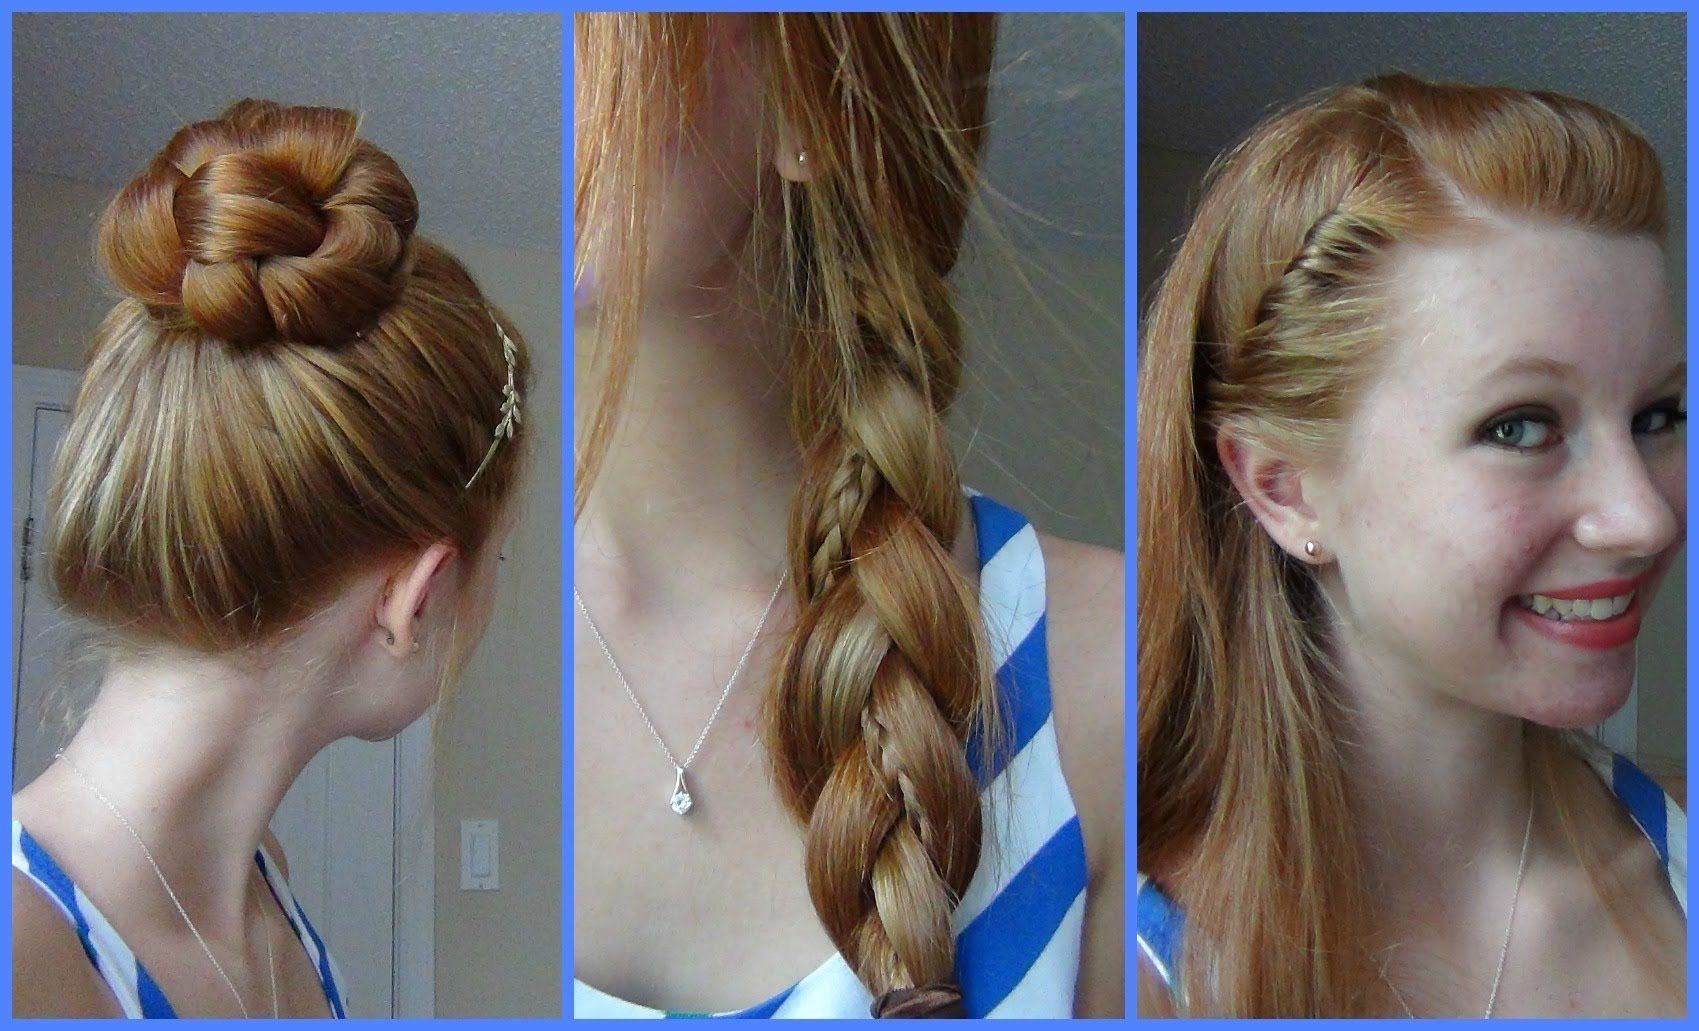 Quick Cute Hairstyles Hairstyles For A Girl With Long Hair #longhairstyle #longhaircut